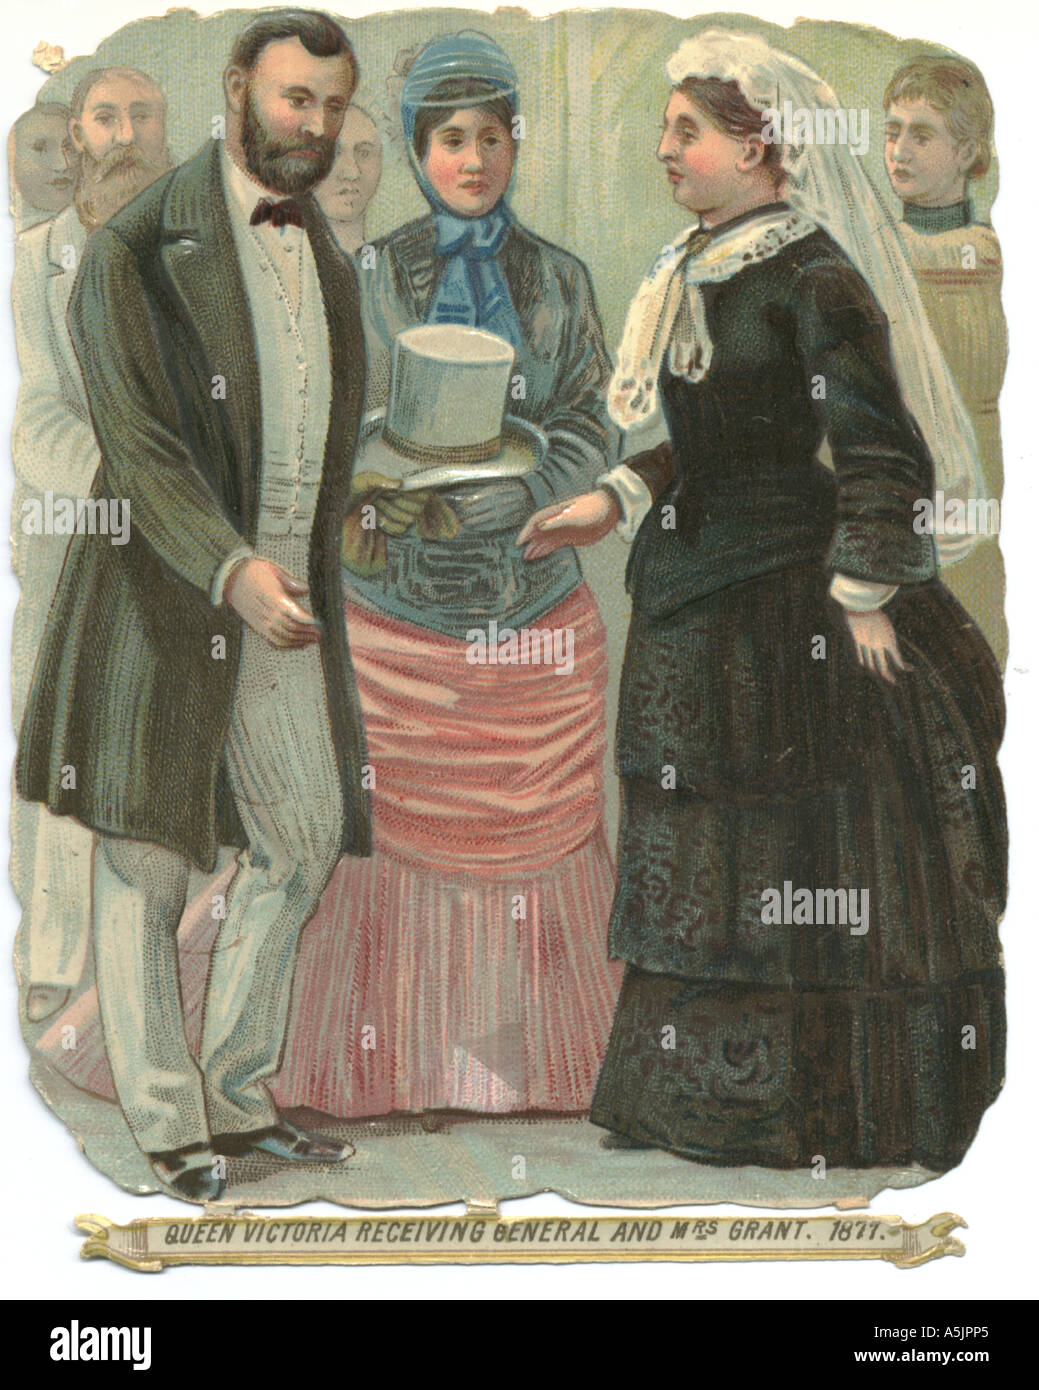 Die cut scrap showing Queen Victoria receiving General and Mrs Grant, 1877. Stock Photo